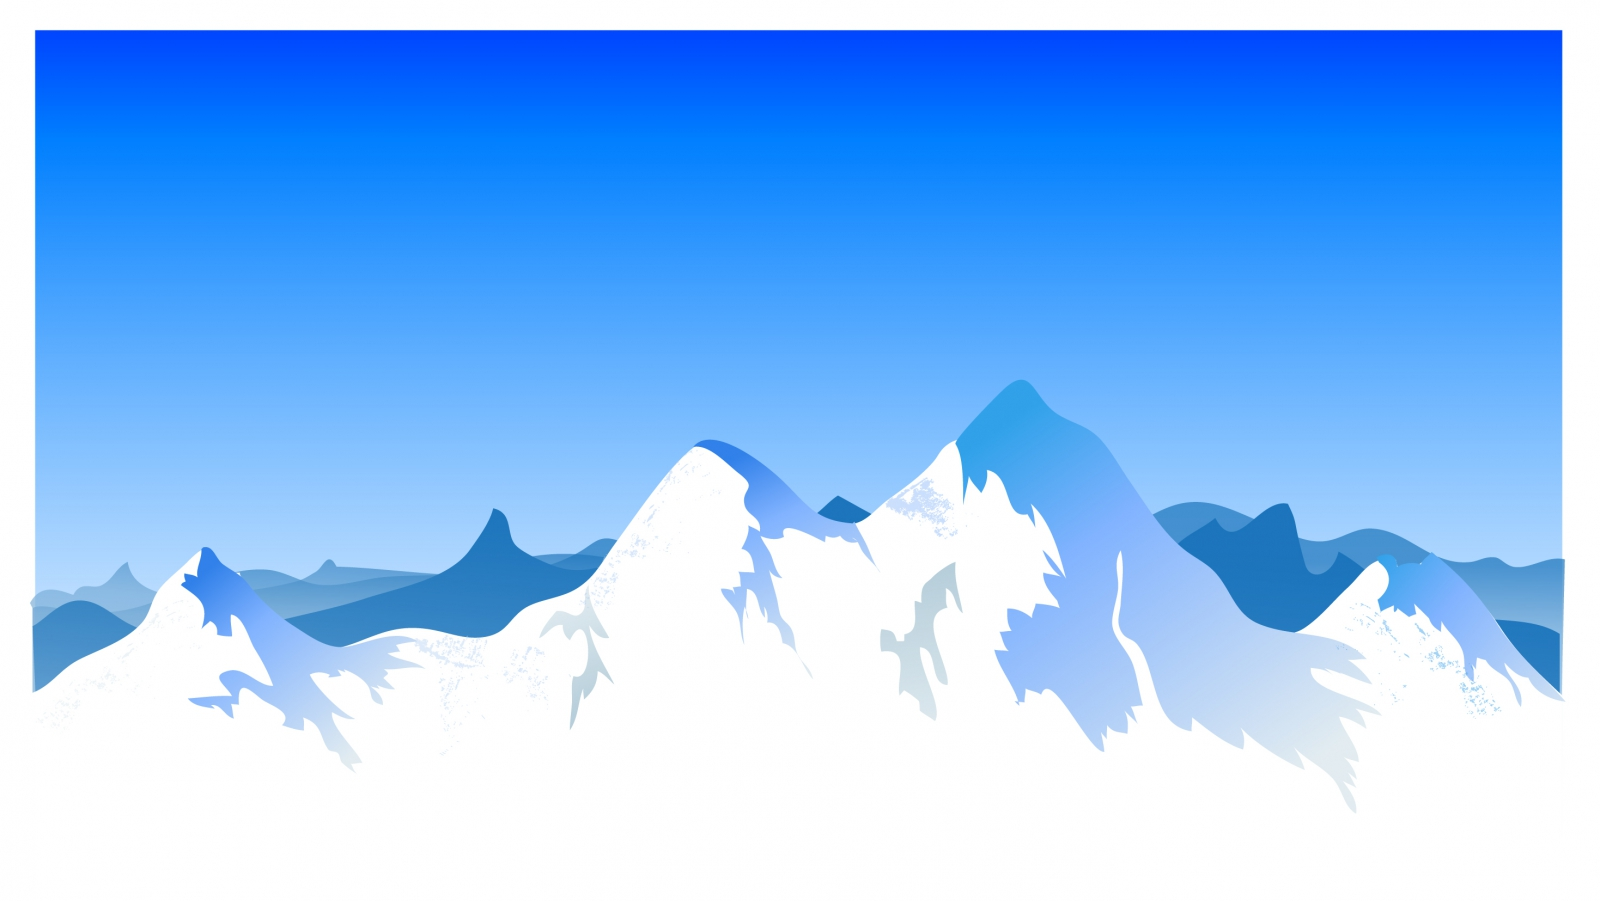 Silhouette at getdrawings com. Range clipart snow capped mountain clipart royalty free stock